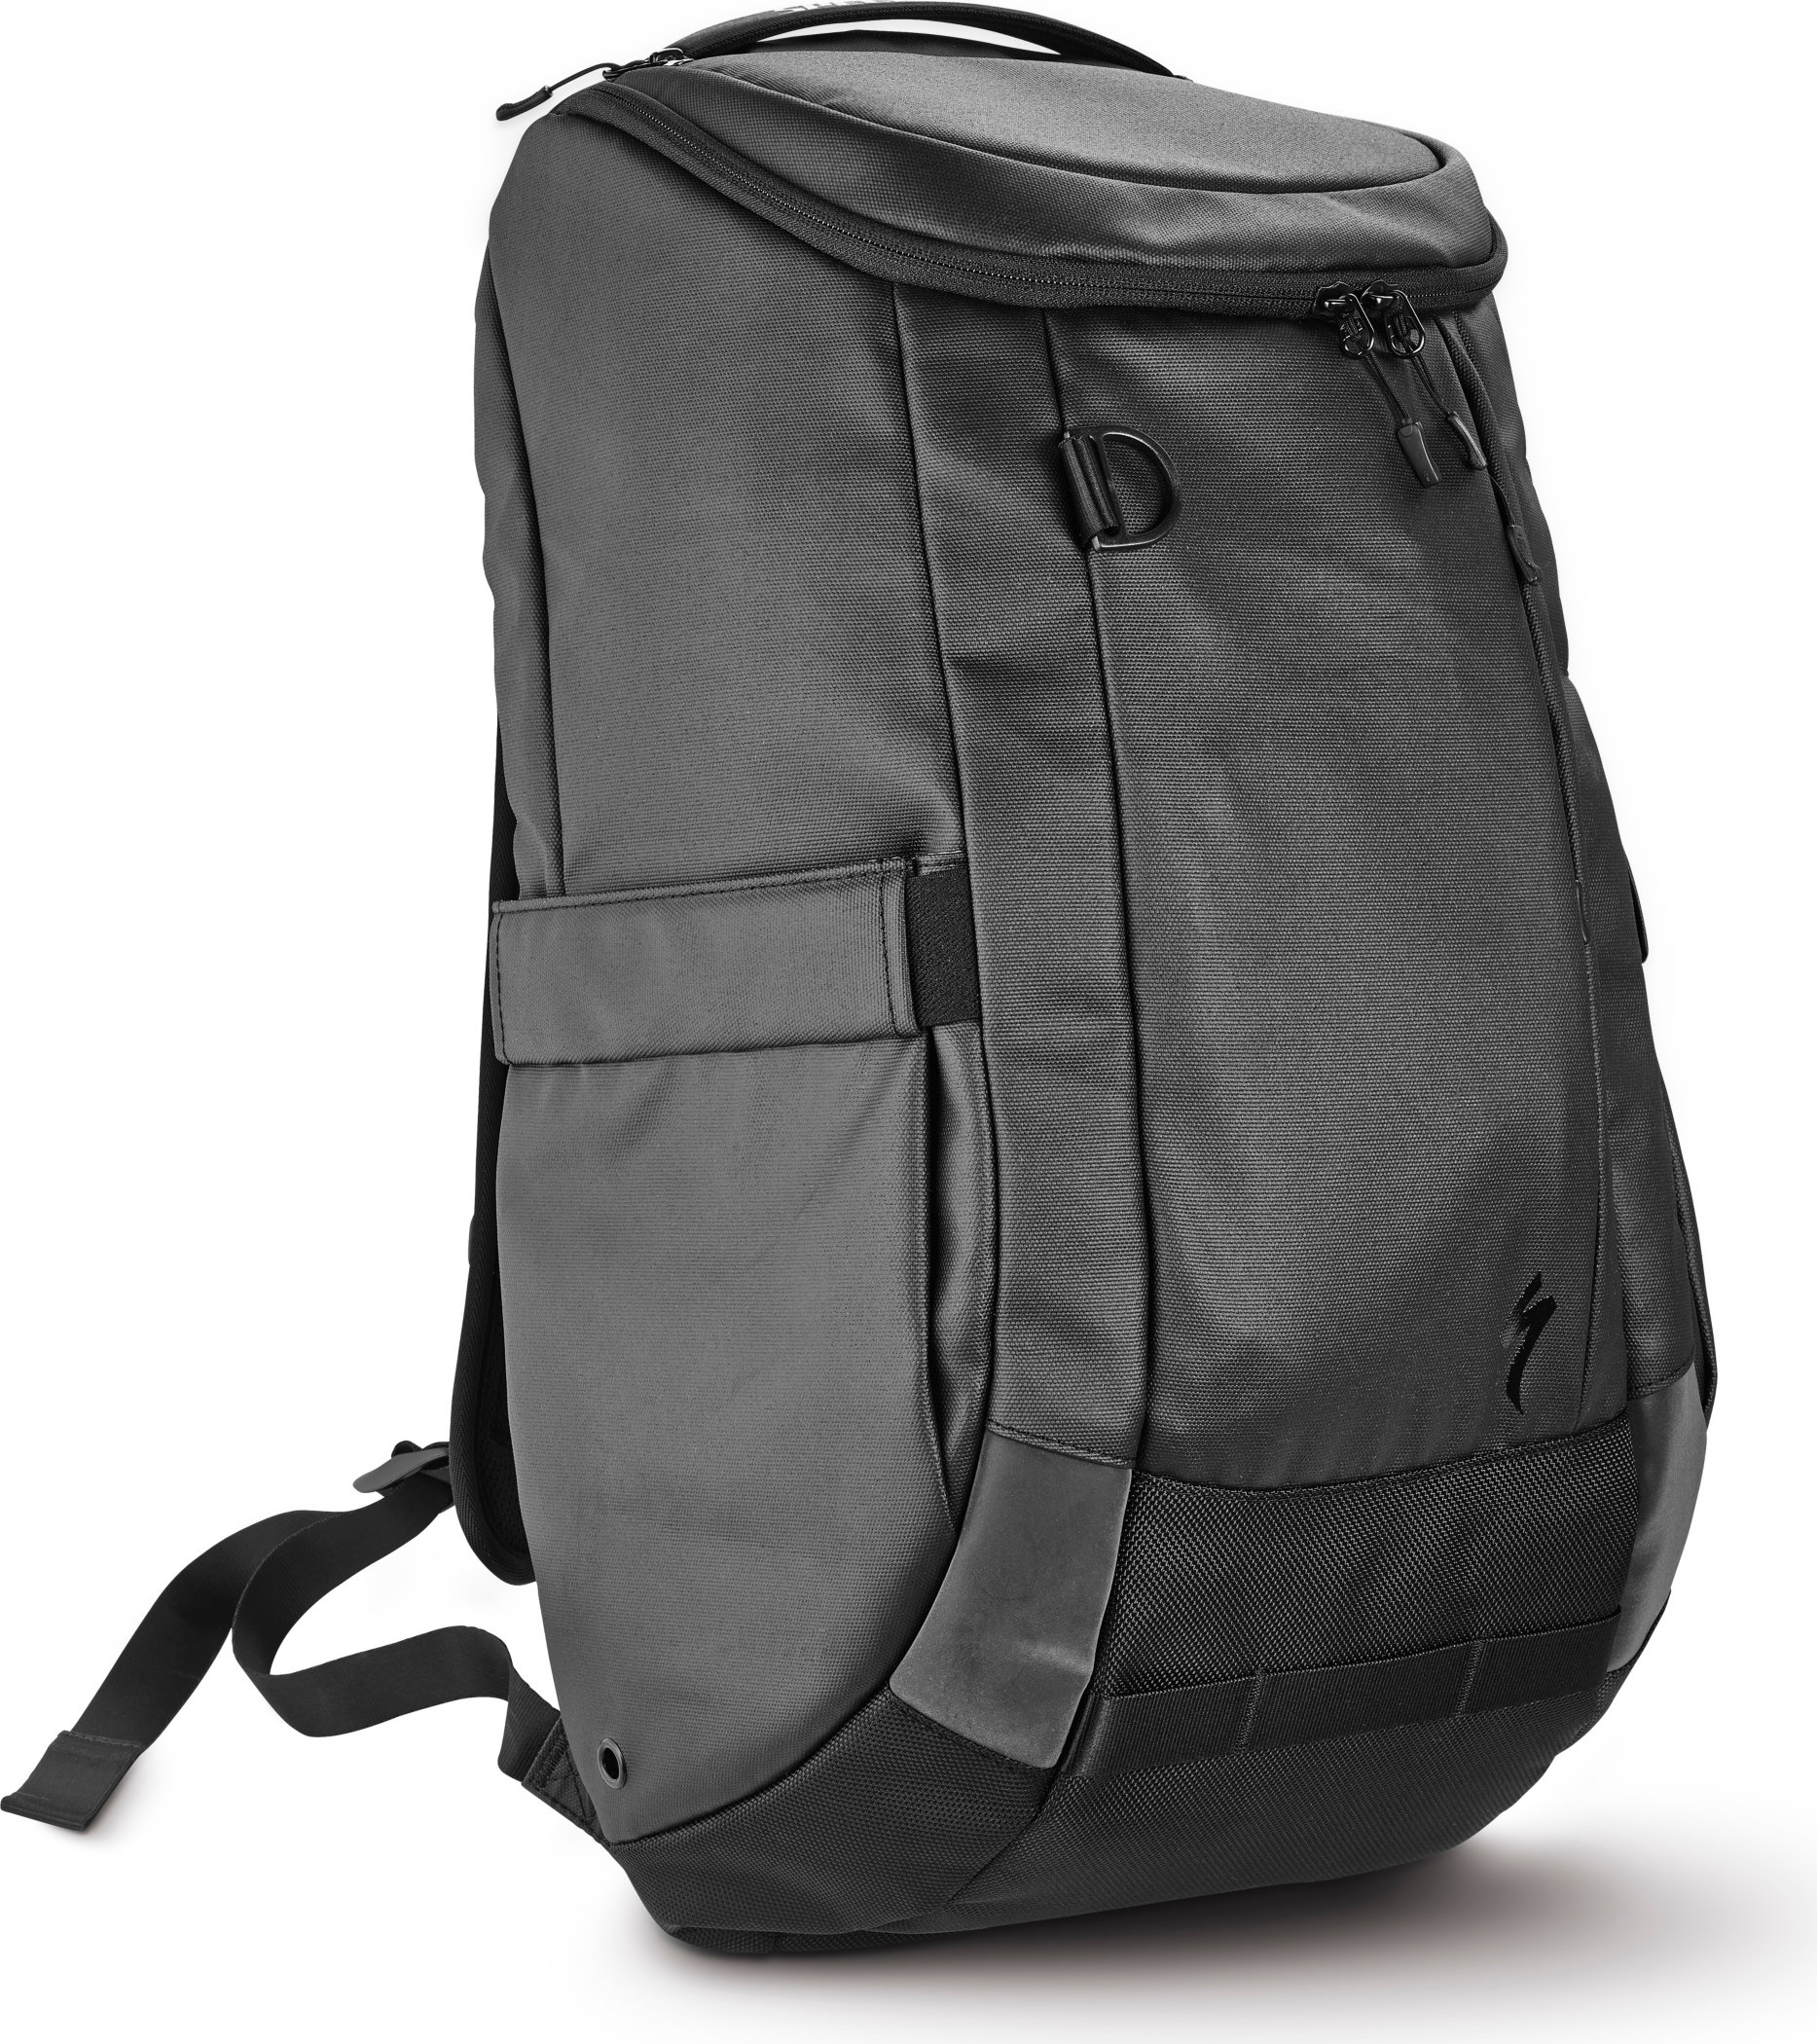 SPECIALIZED SPECIALIZED BACKPACK BLK - SPECIALIZED SPECIALIZED BACKPACK BLK